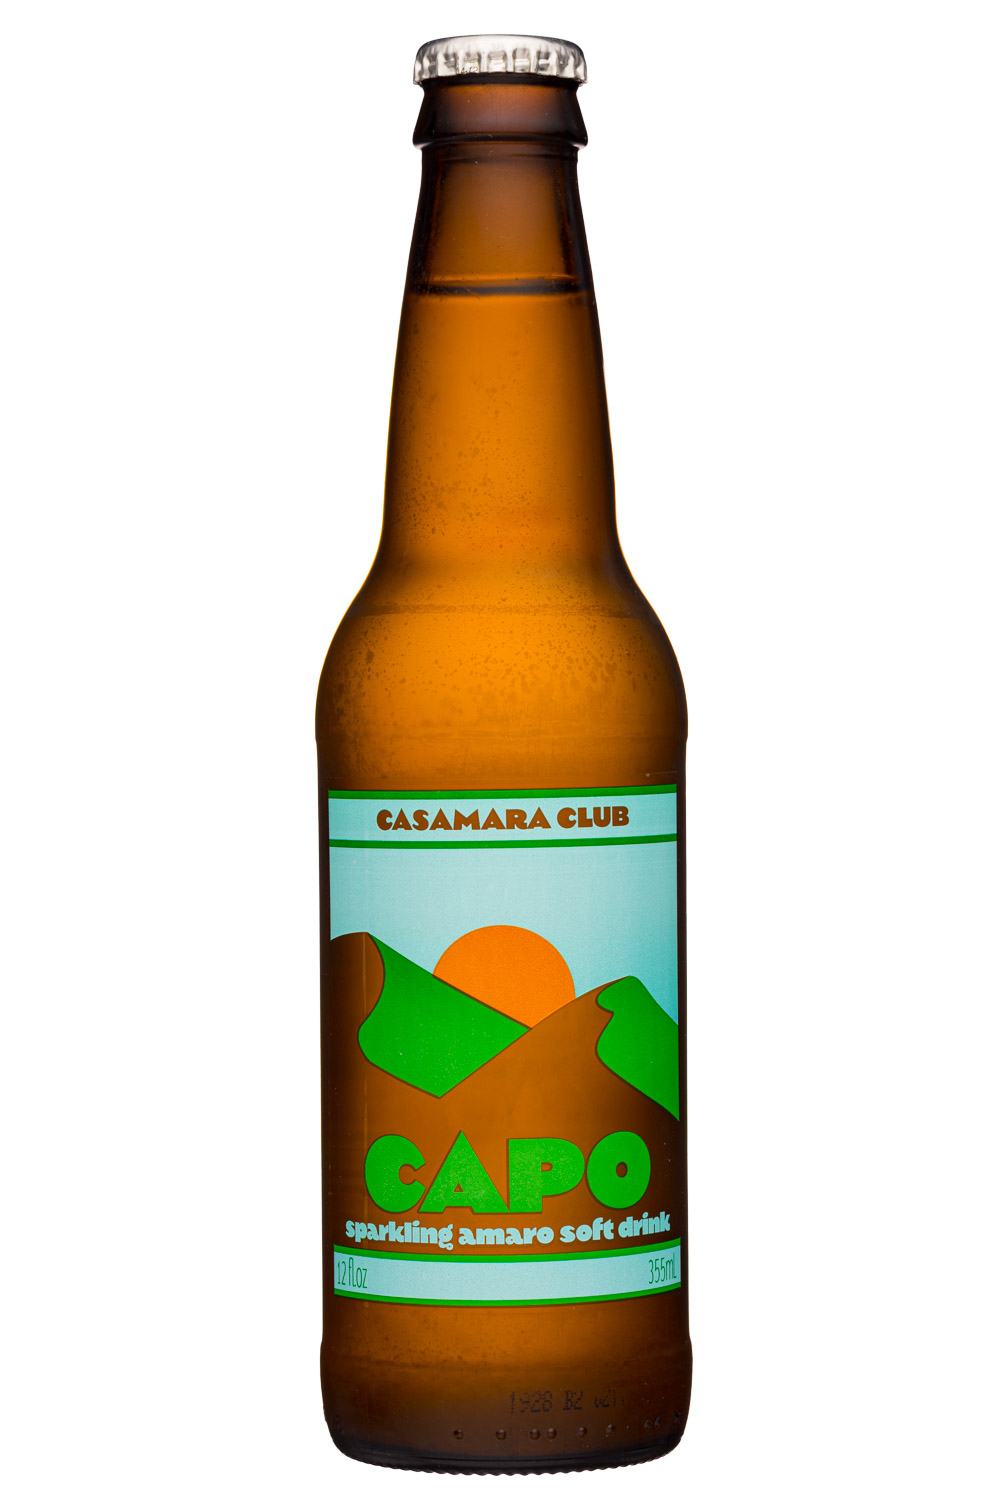 Capo - Sparking Amaro Soft Drink